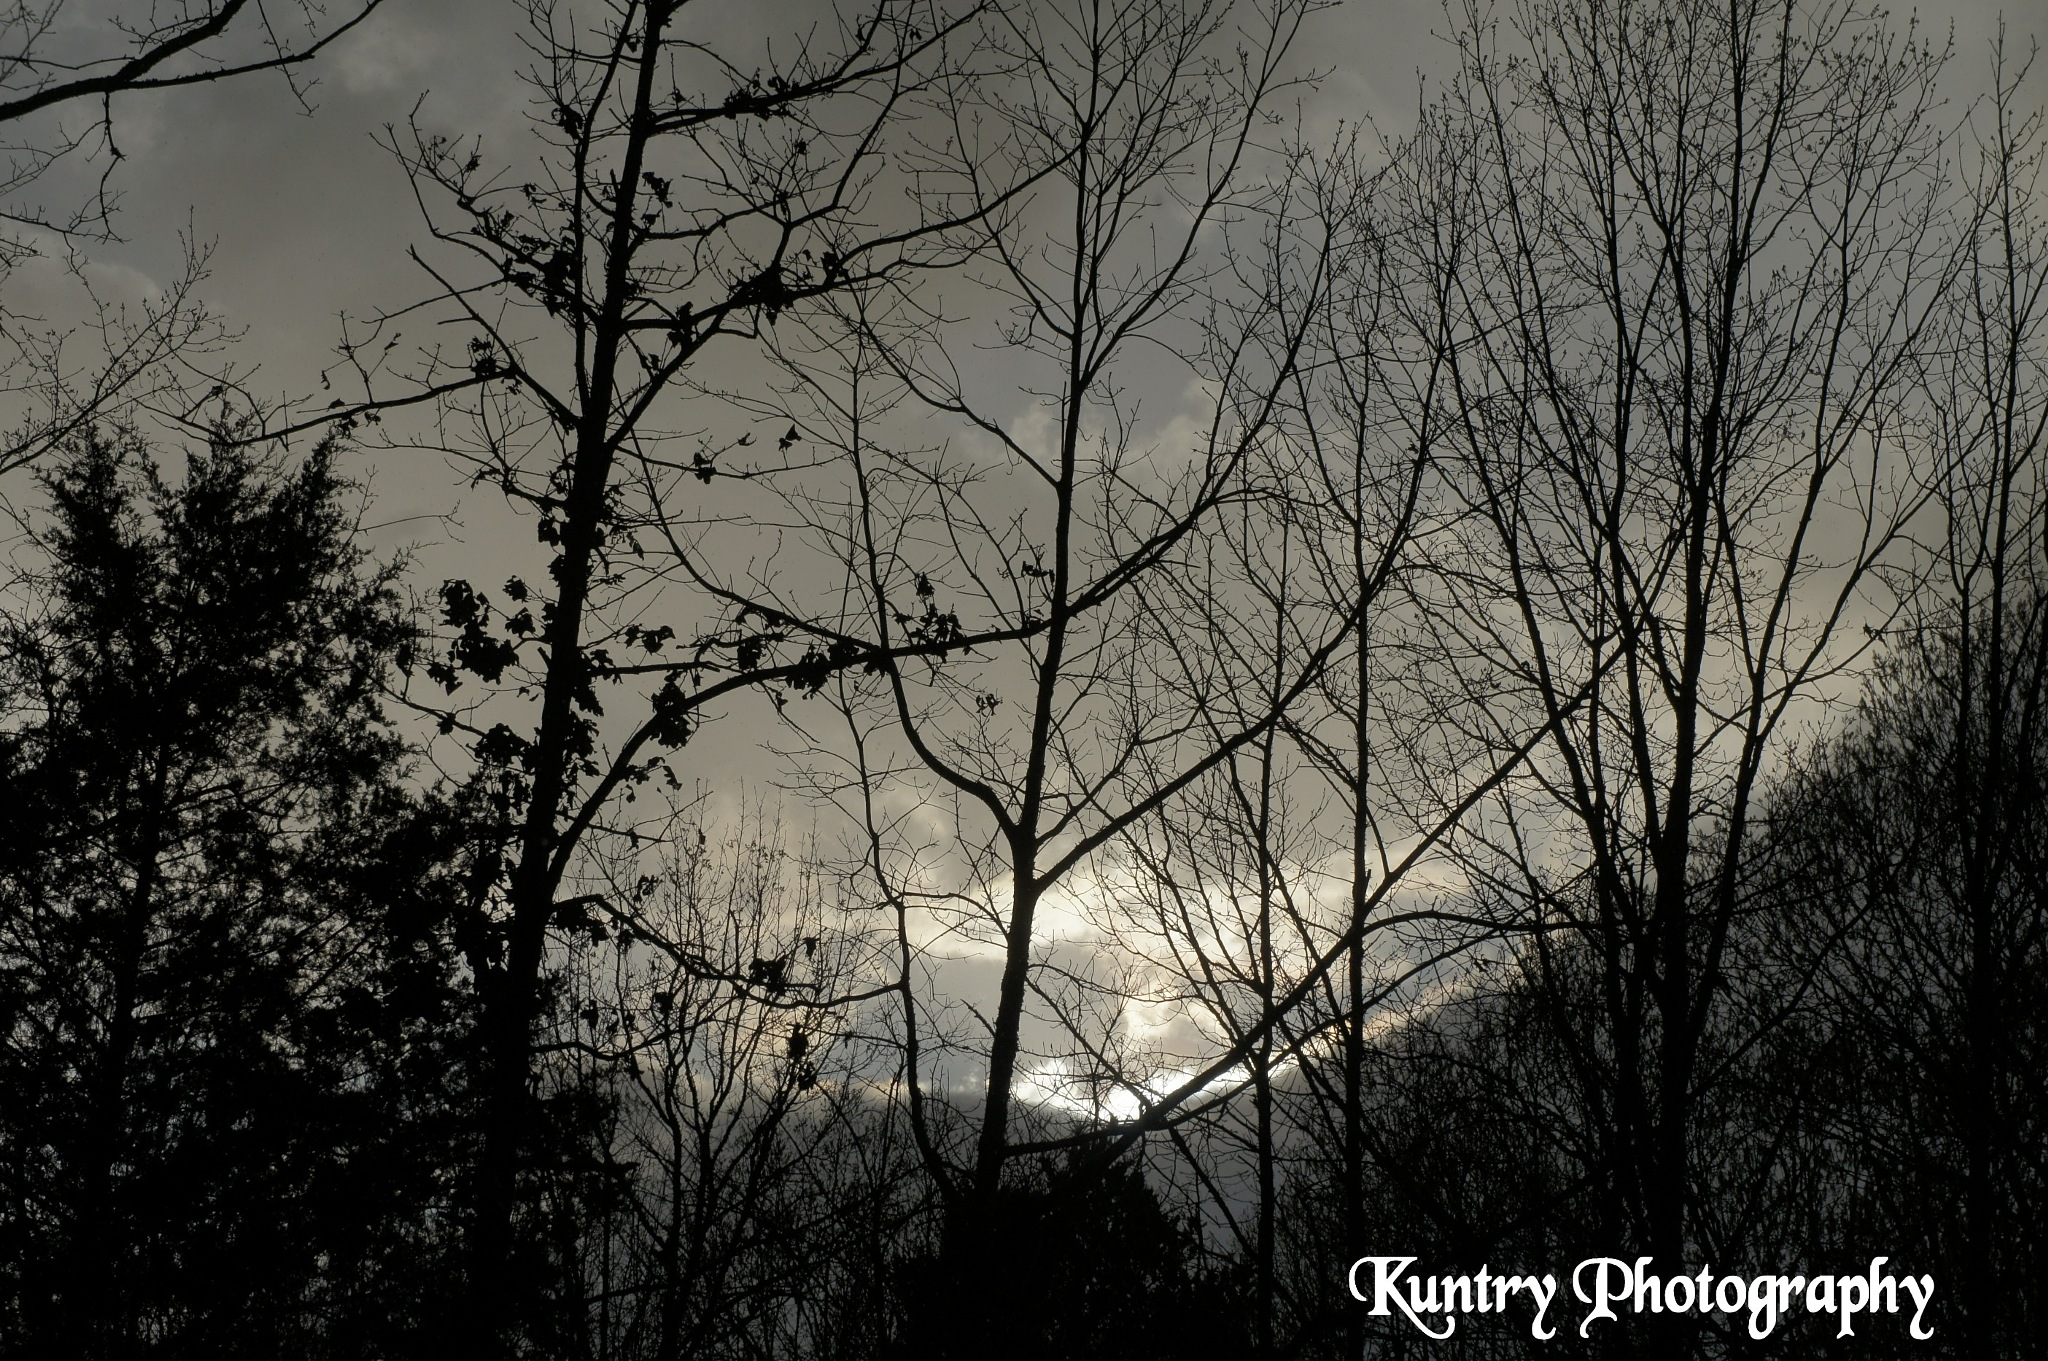 Untitled by Kuntry Photography